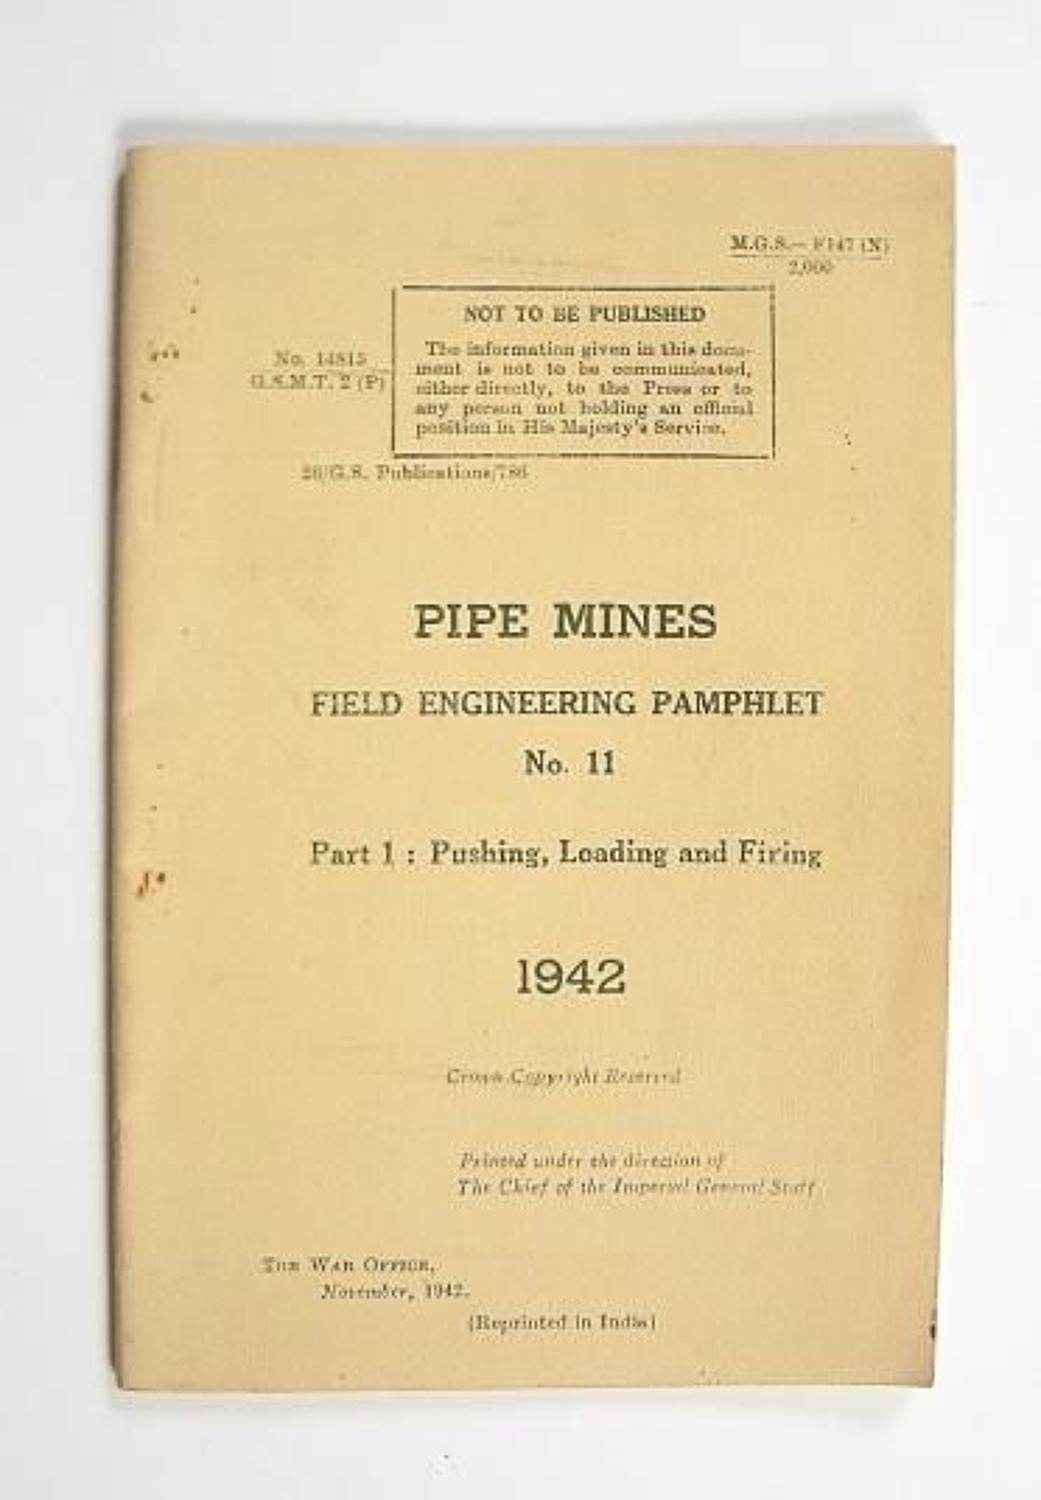 WW2 1942 Pipe Mines Field Engineering Pamphlet.